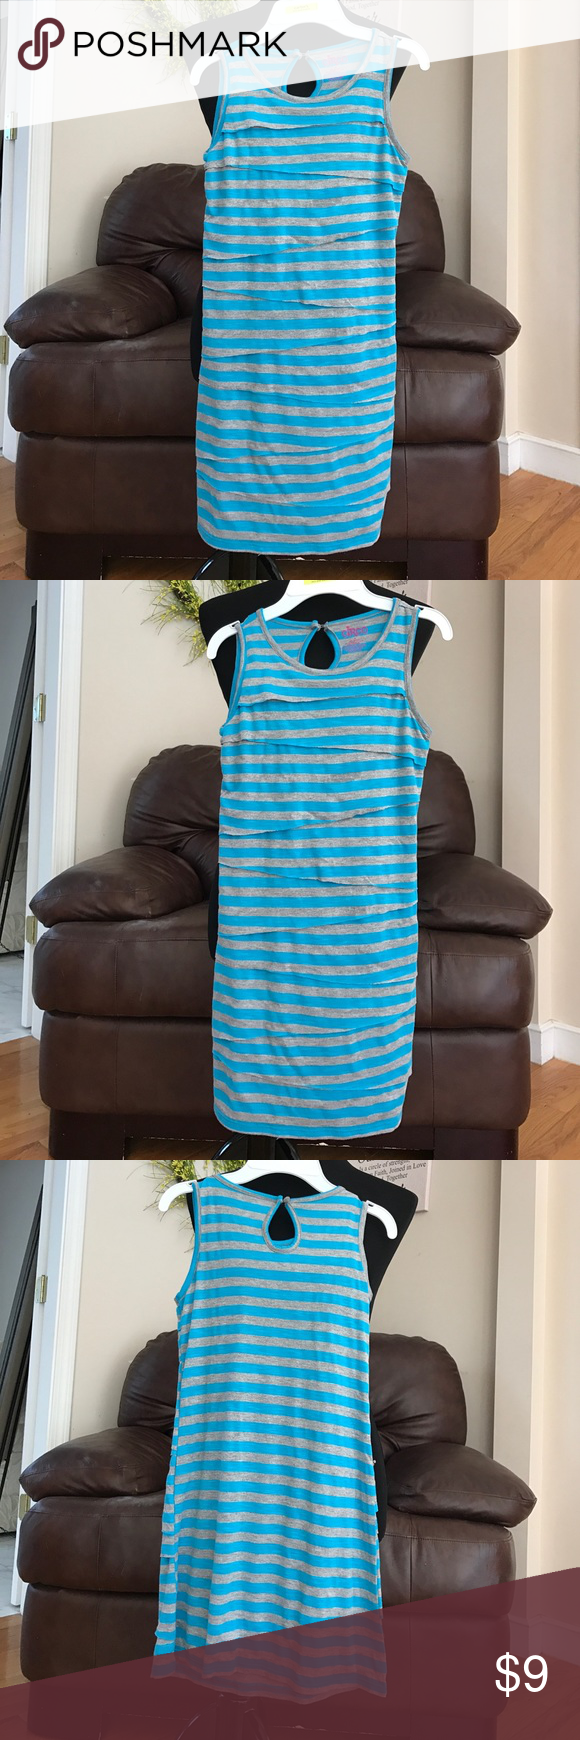 Girls asymmetrical stripe summer dress NWOT Cute jersey dress with grey/blue stripe asymmetric from and keyhole back with button. Nice for spring. No tags, never worn Circo Dresses Casual